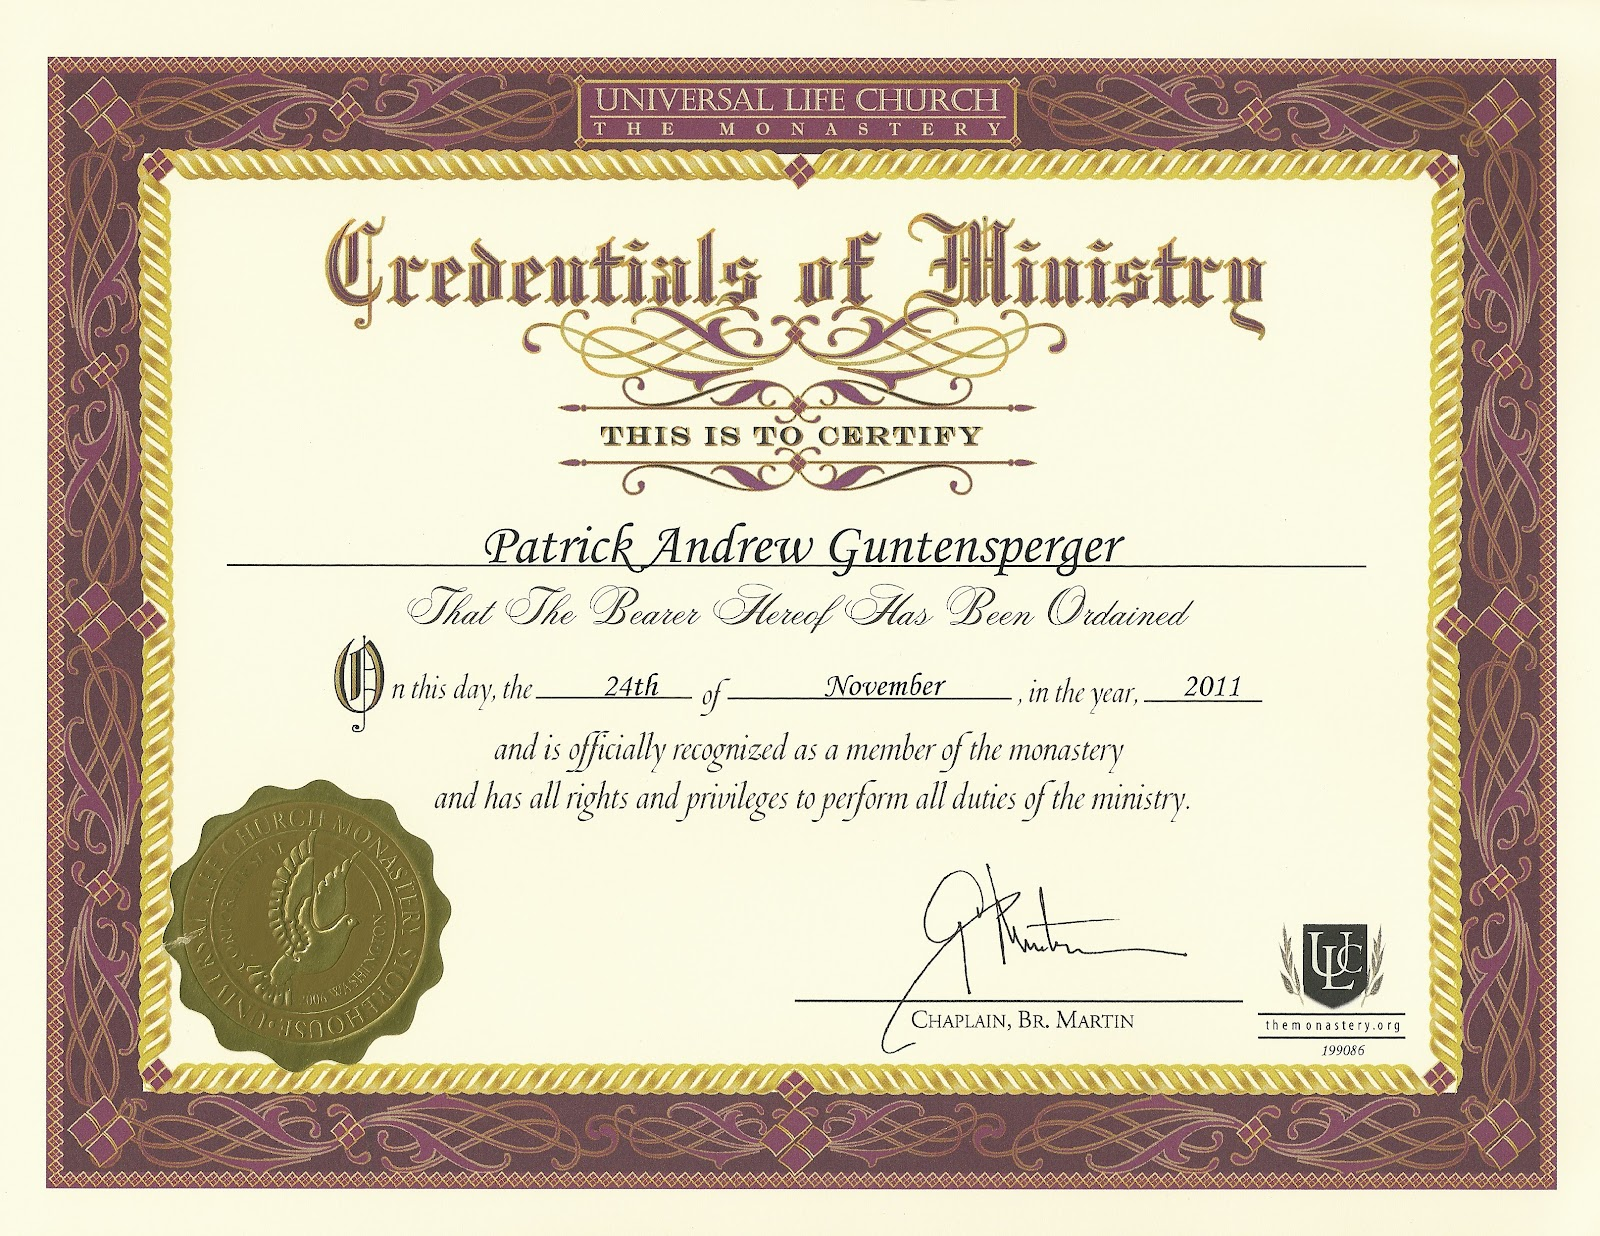 Pin certificate of ordination wicca online community for pagans and on pinterest for Free ordination certificate